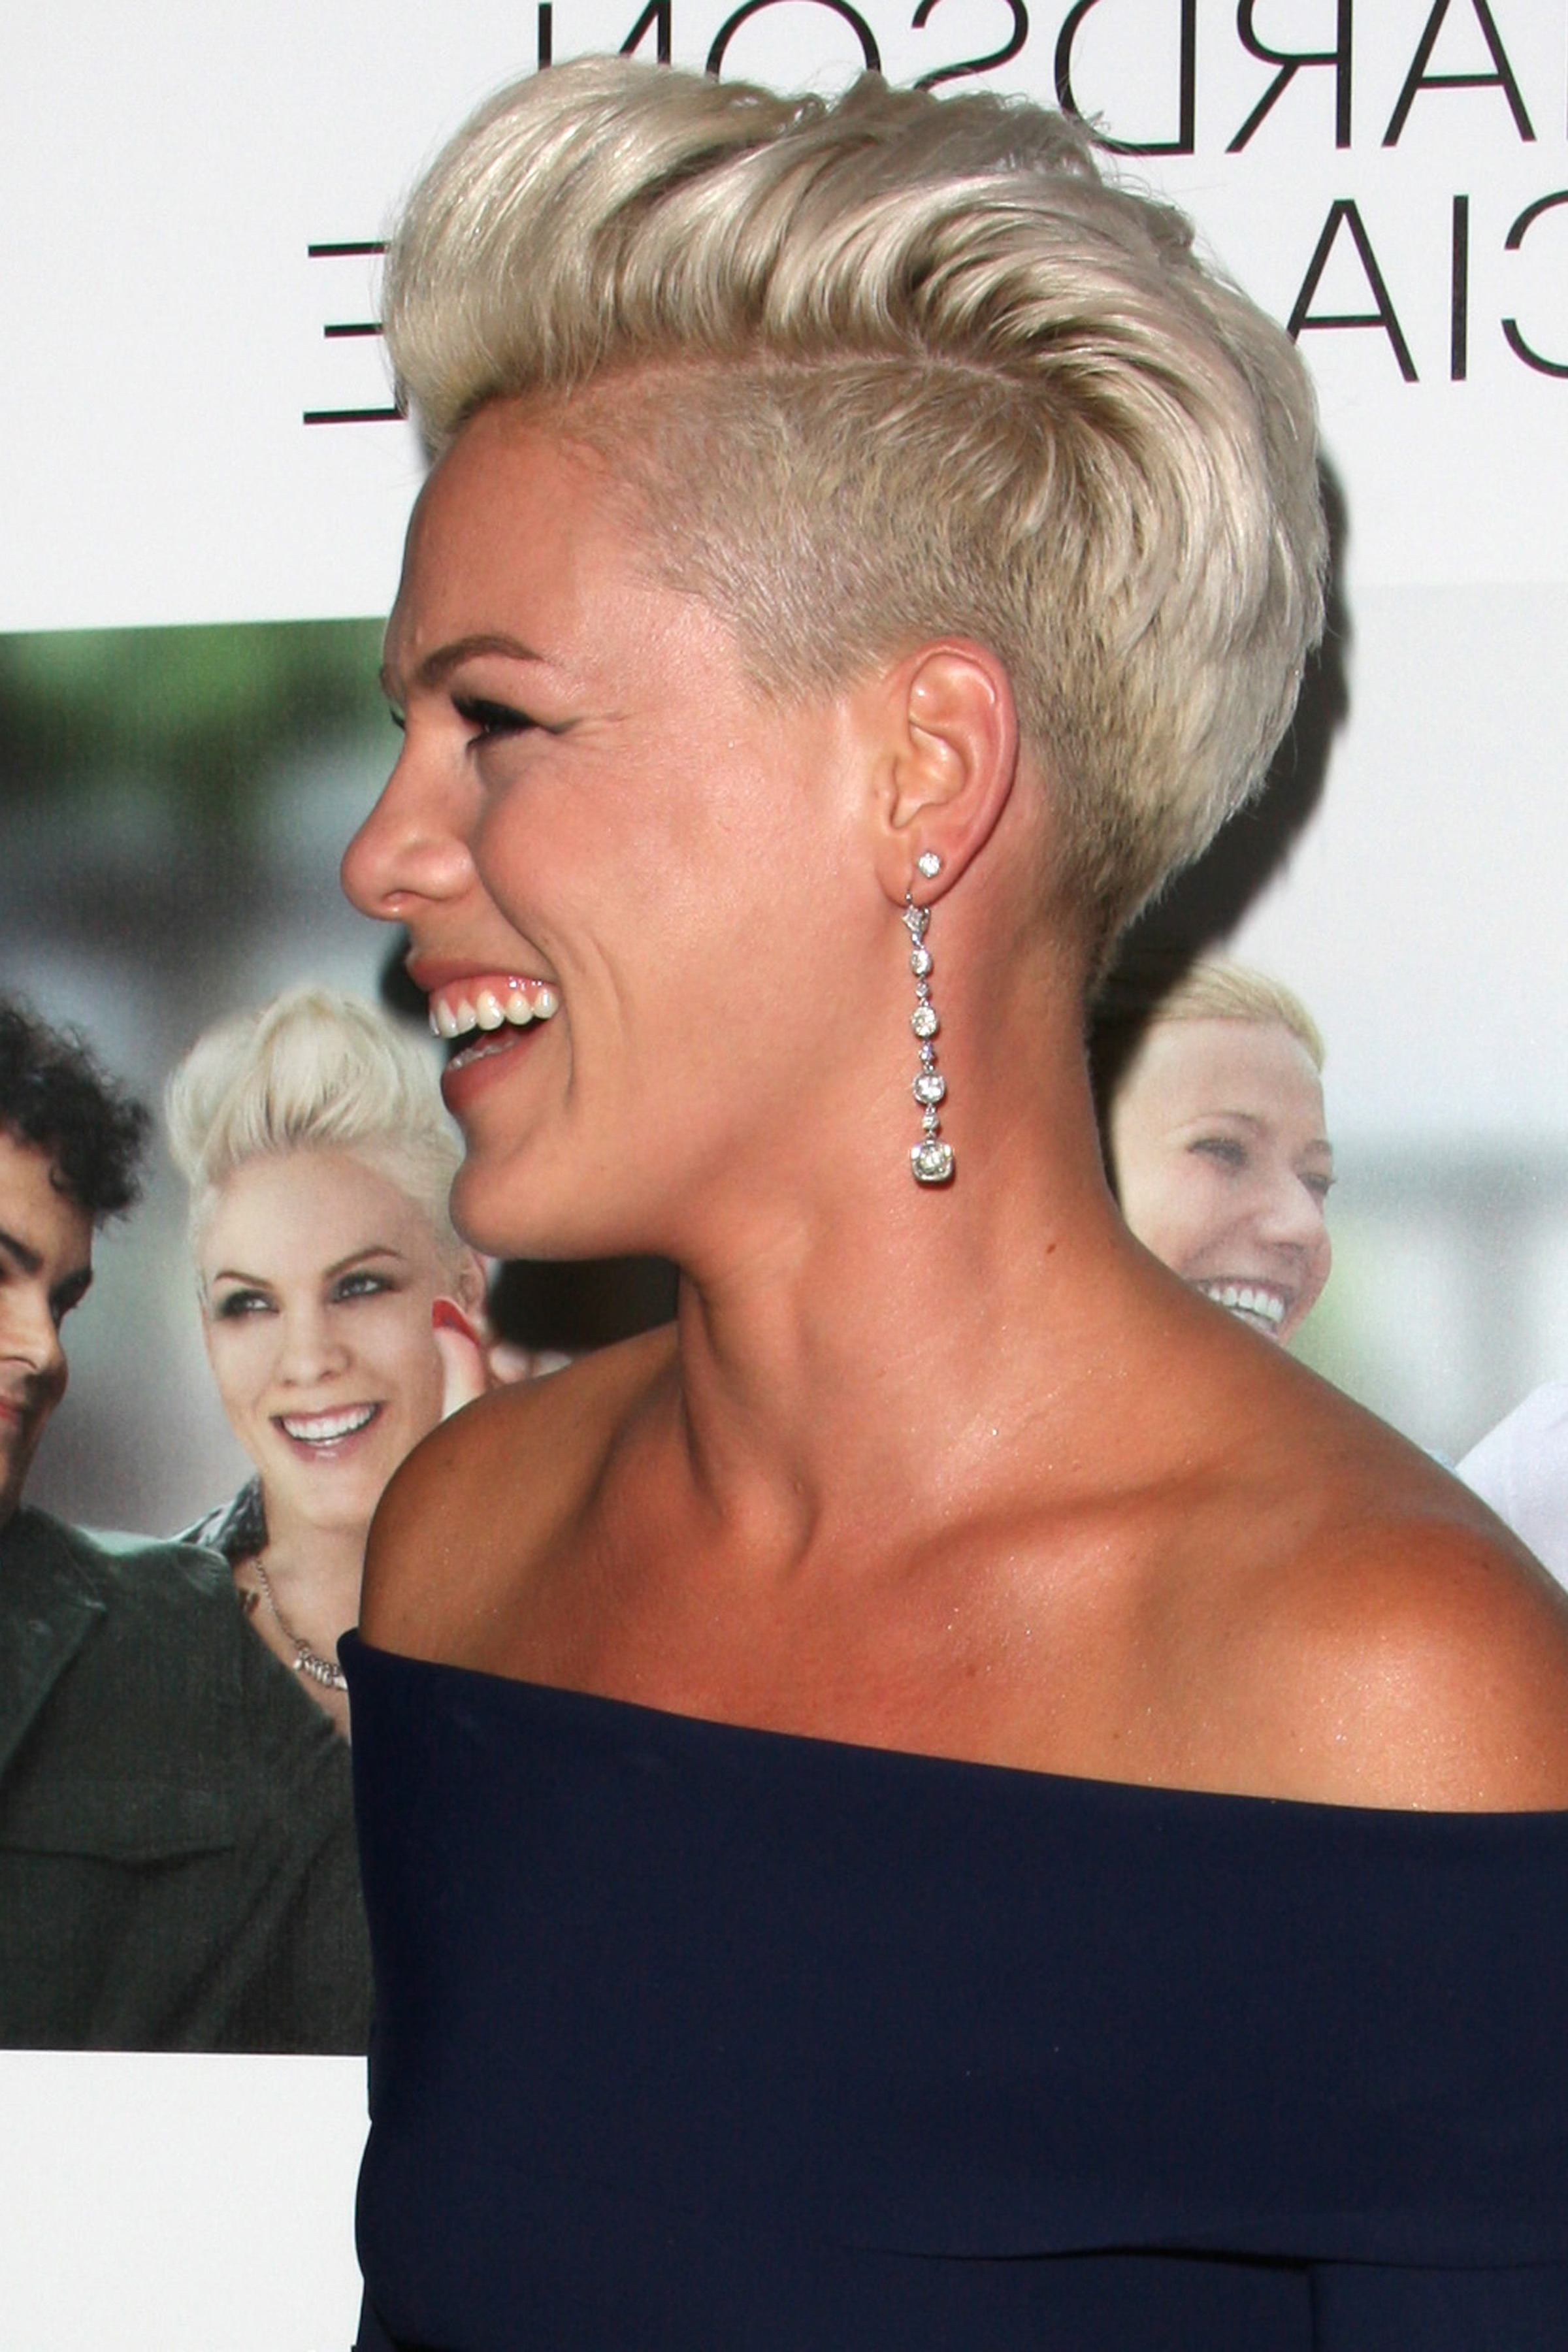 Pink Short Hairstyles – Hairstyle For Women & Man Regarding Pink Short Hairstyles (View 6 of 25)